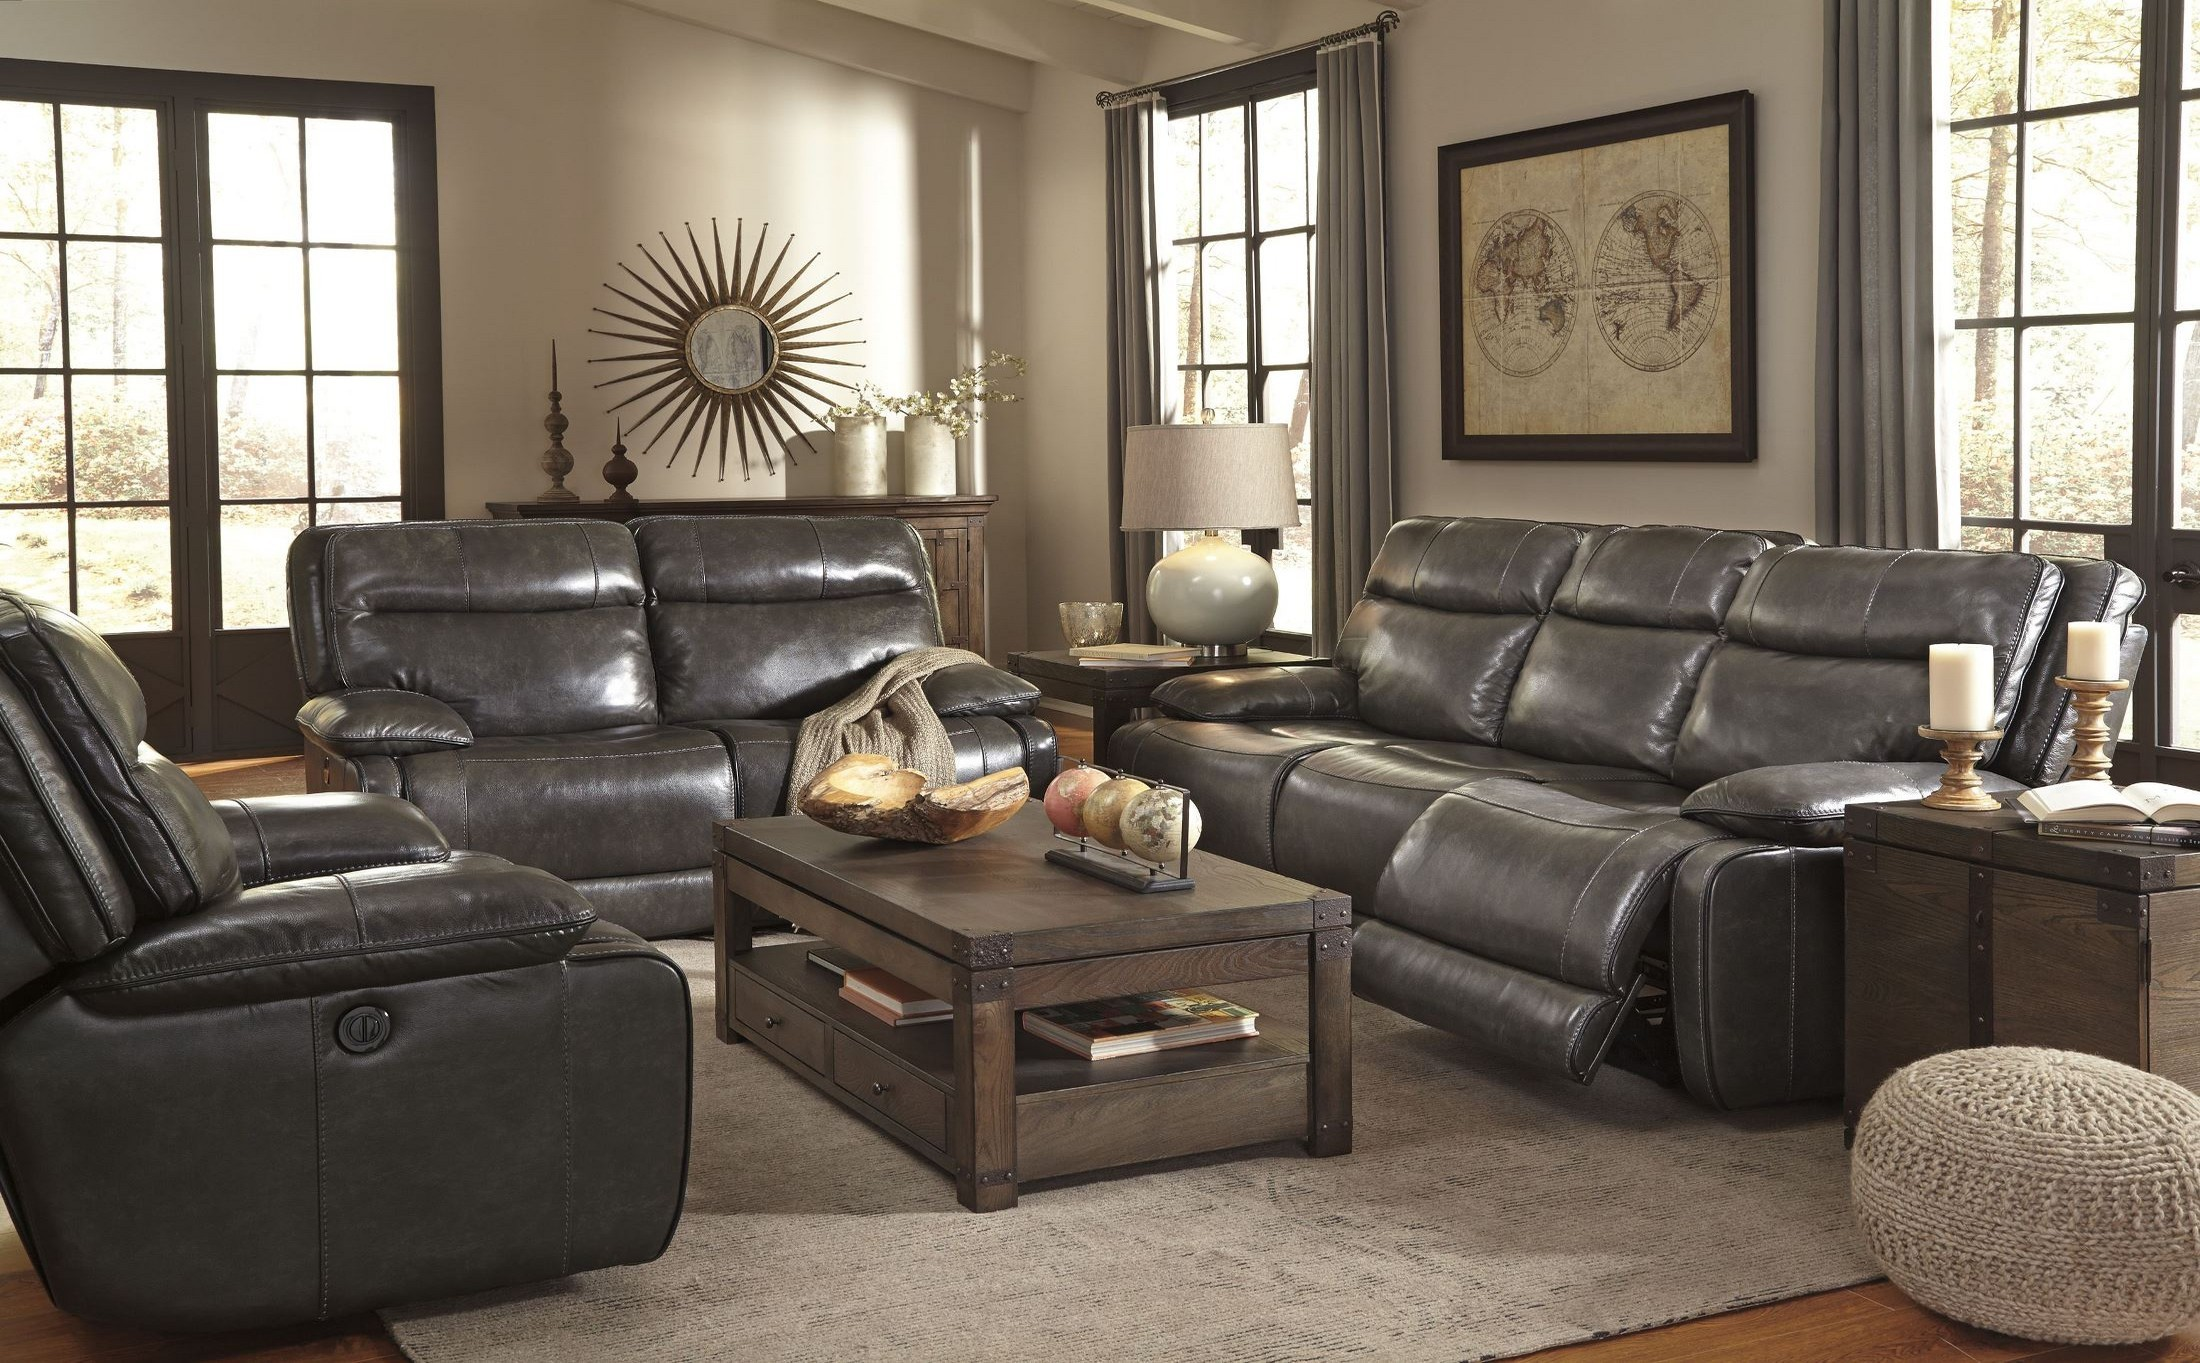 Palladum metal power reclining living room set from ashley Reclining living room furniture